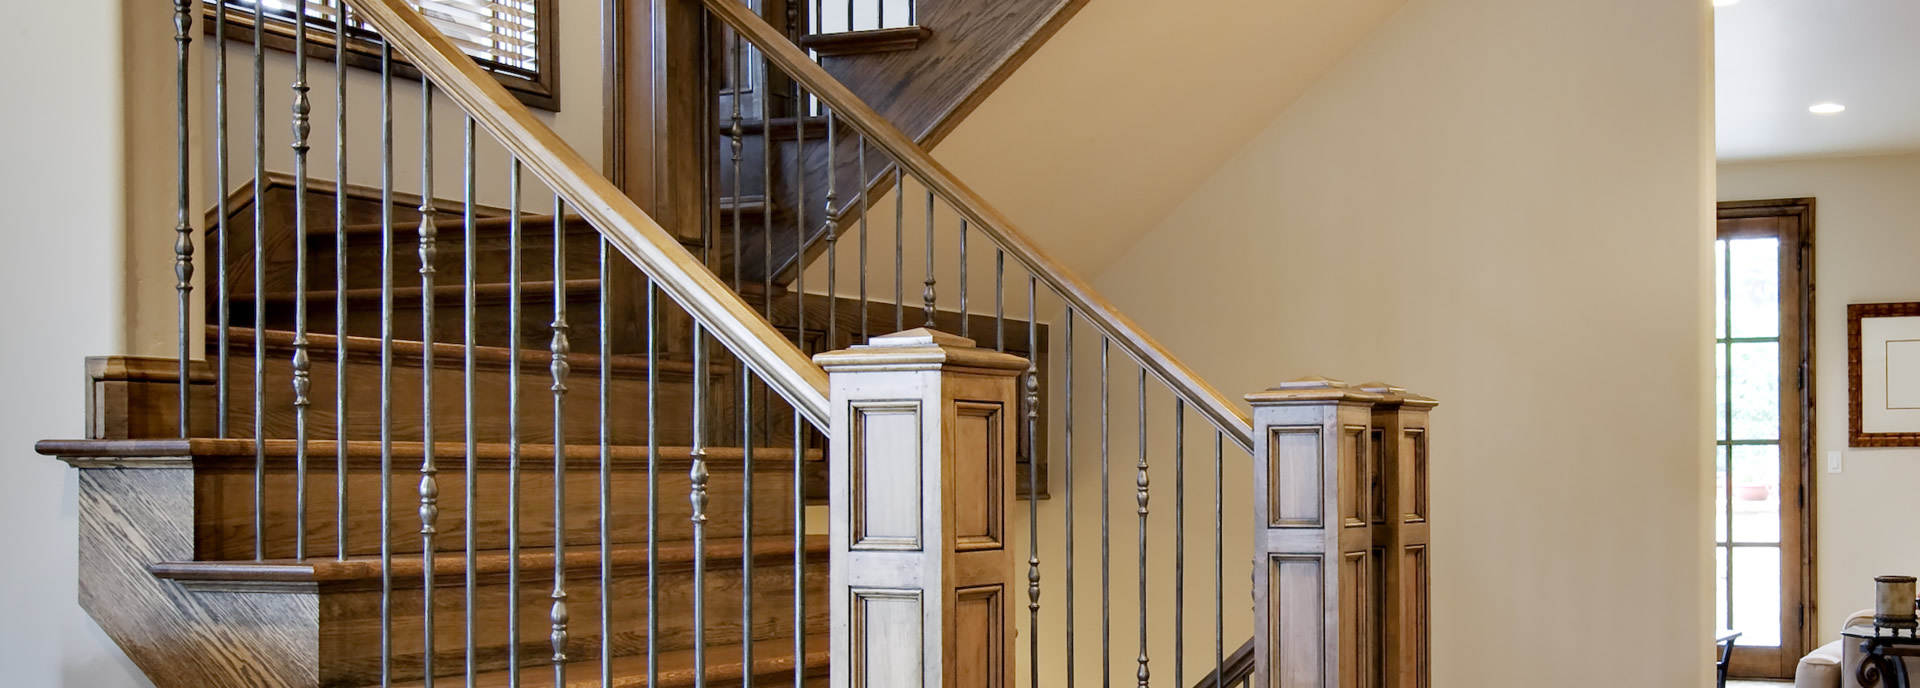 Tuscan Staircases and Wrought Iron Railings Alpharetta, GA